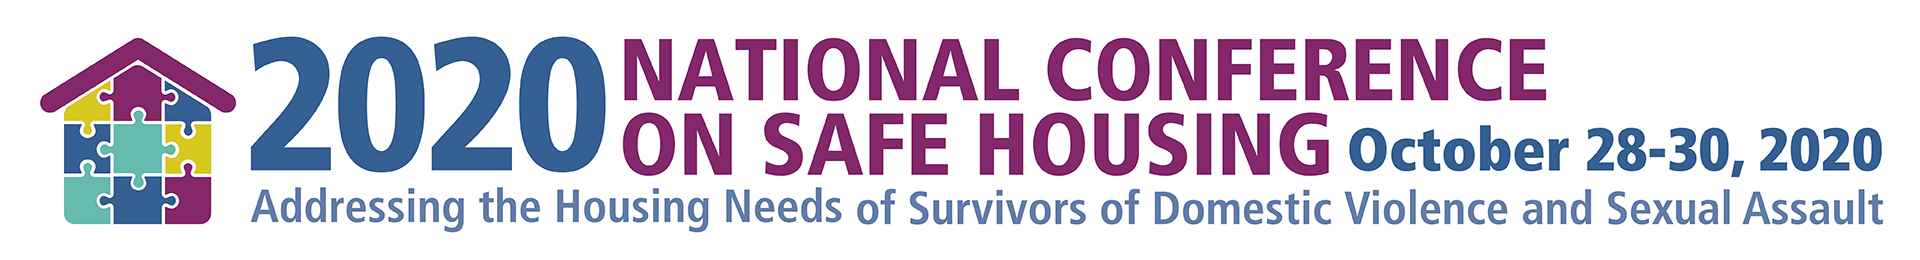 2020 National Conference on Safe Housing Event Banner